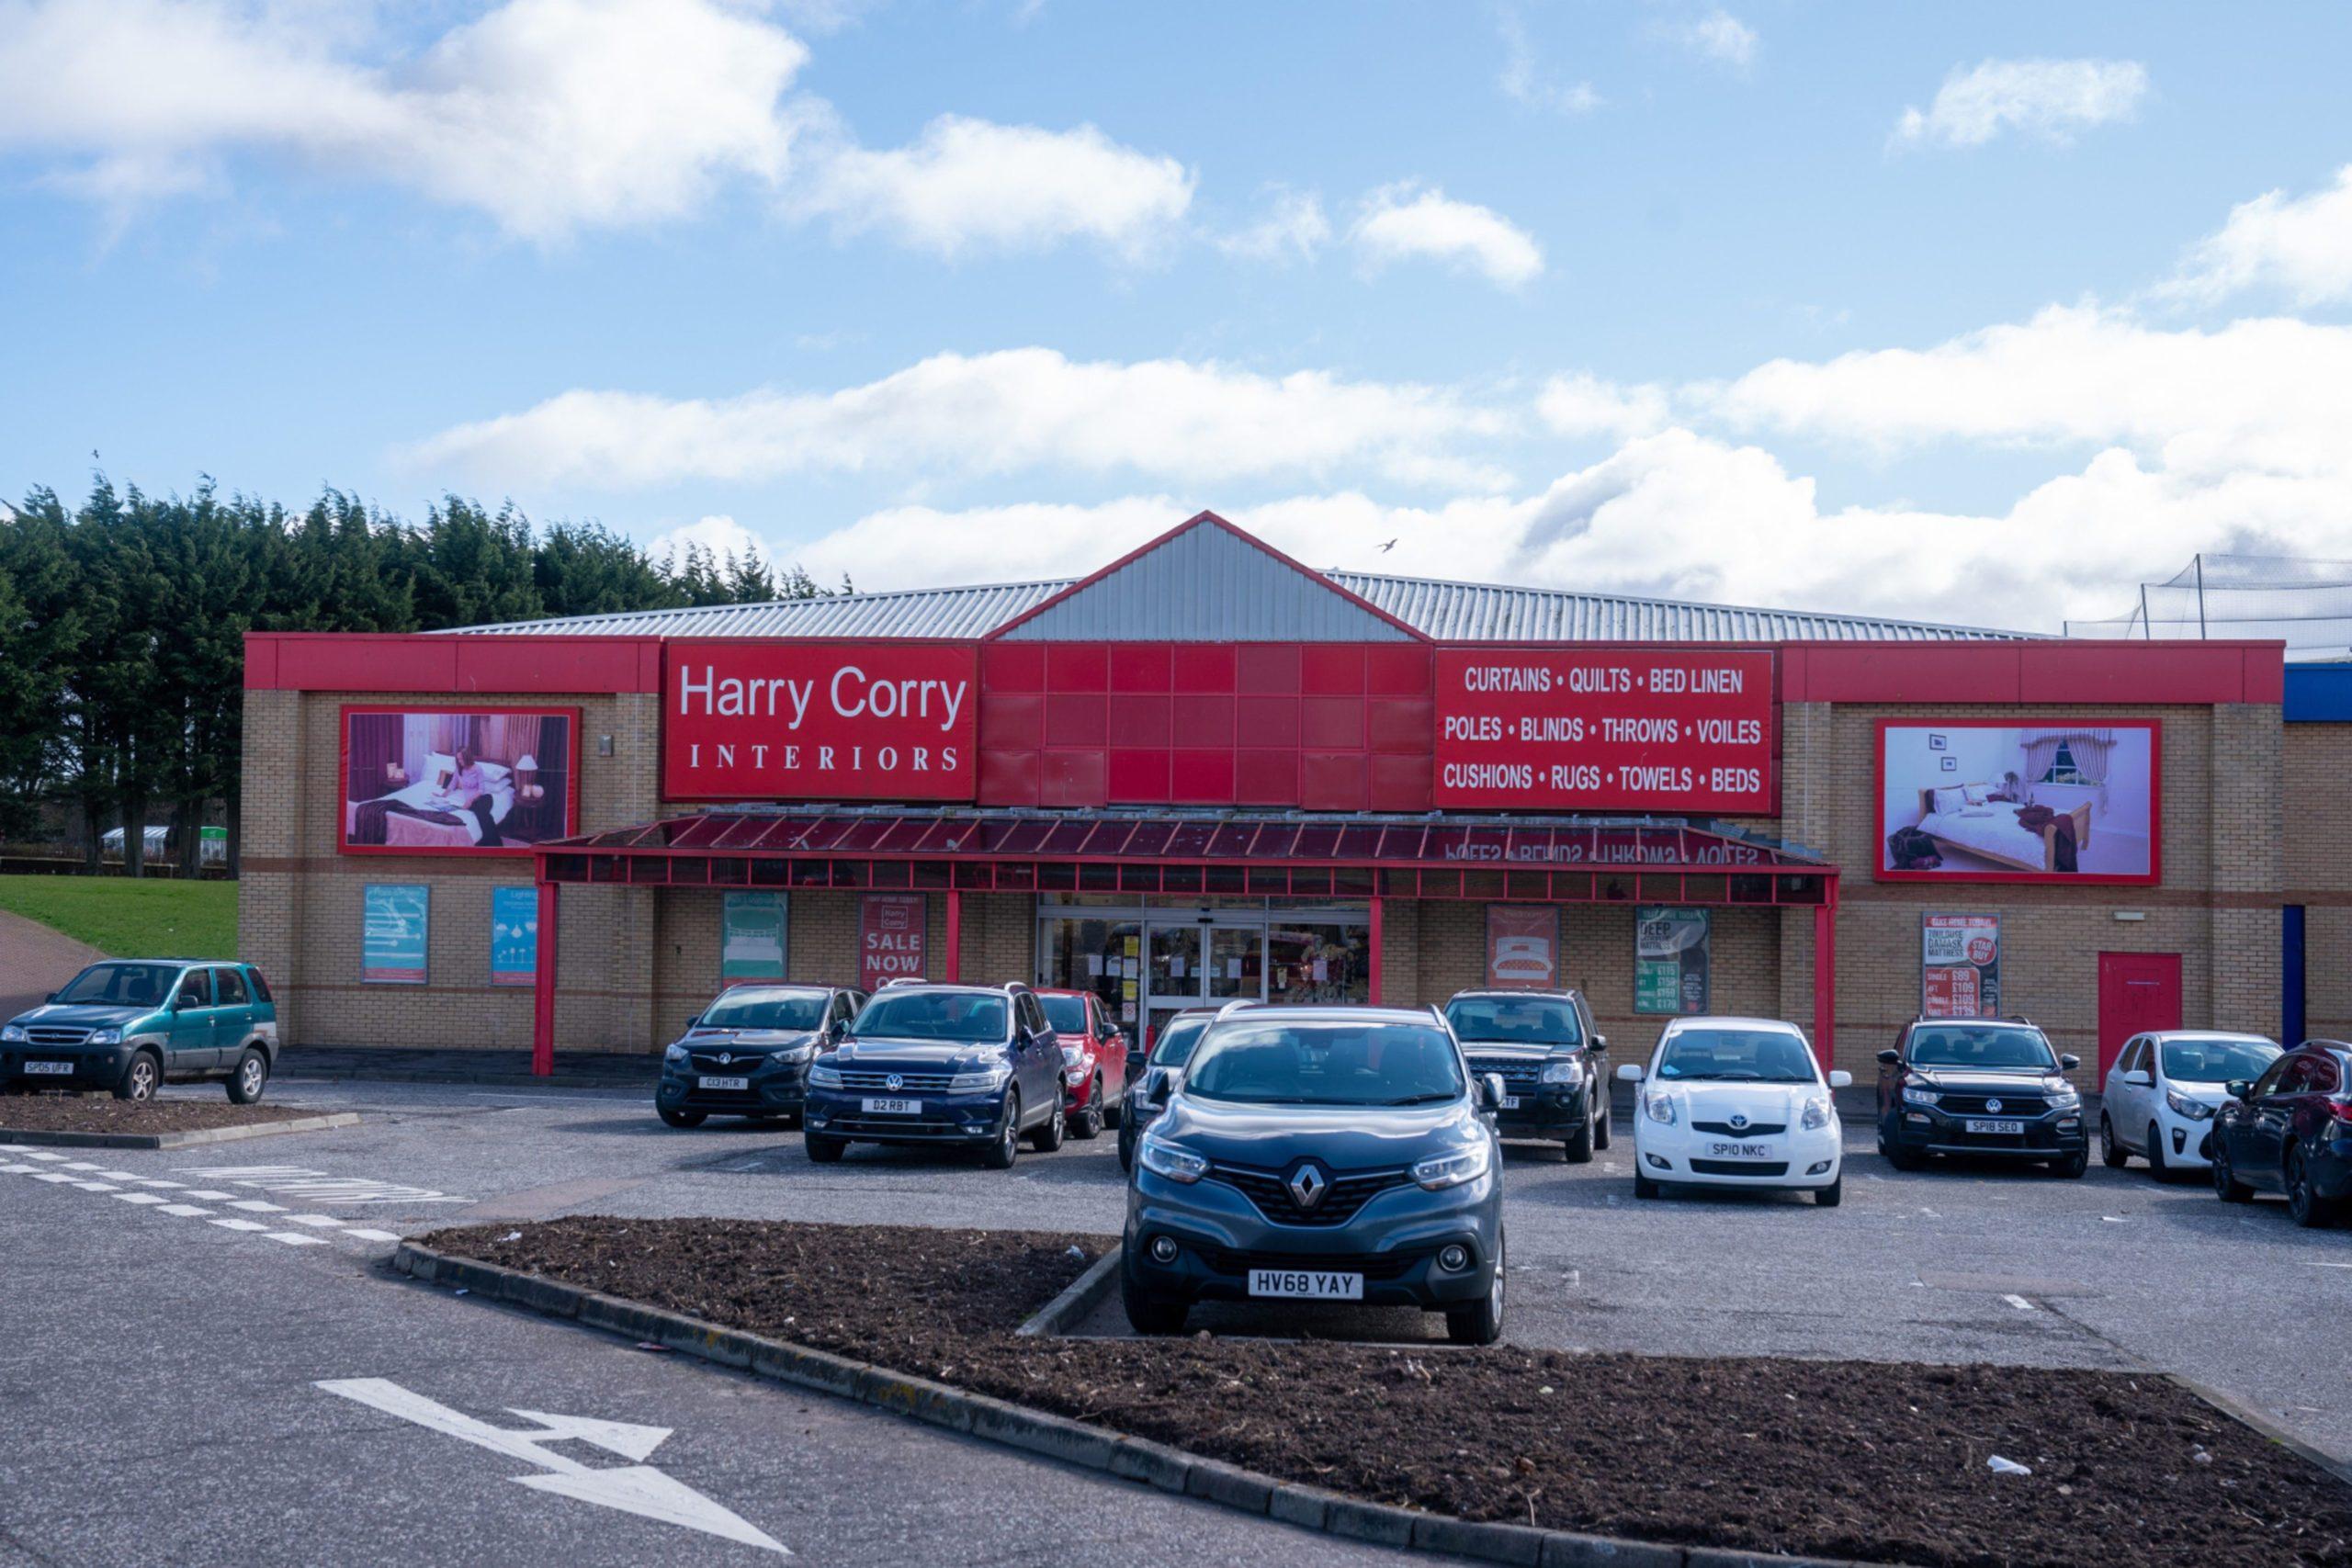 A GV of the Harry Corry store on Kingsway East Retail Park, Dundee CR0020507 Pic Kenny Smith, Kenny Smith Photography Tel 07809 450119